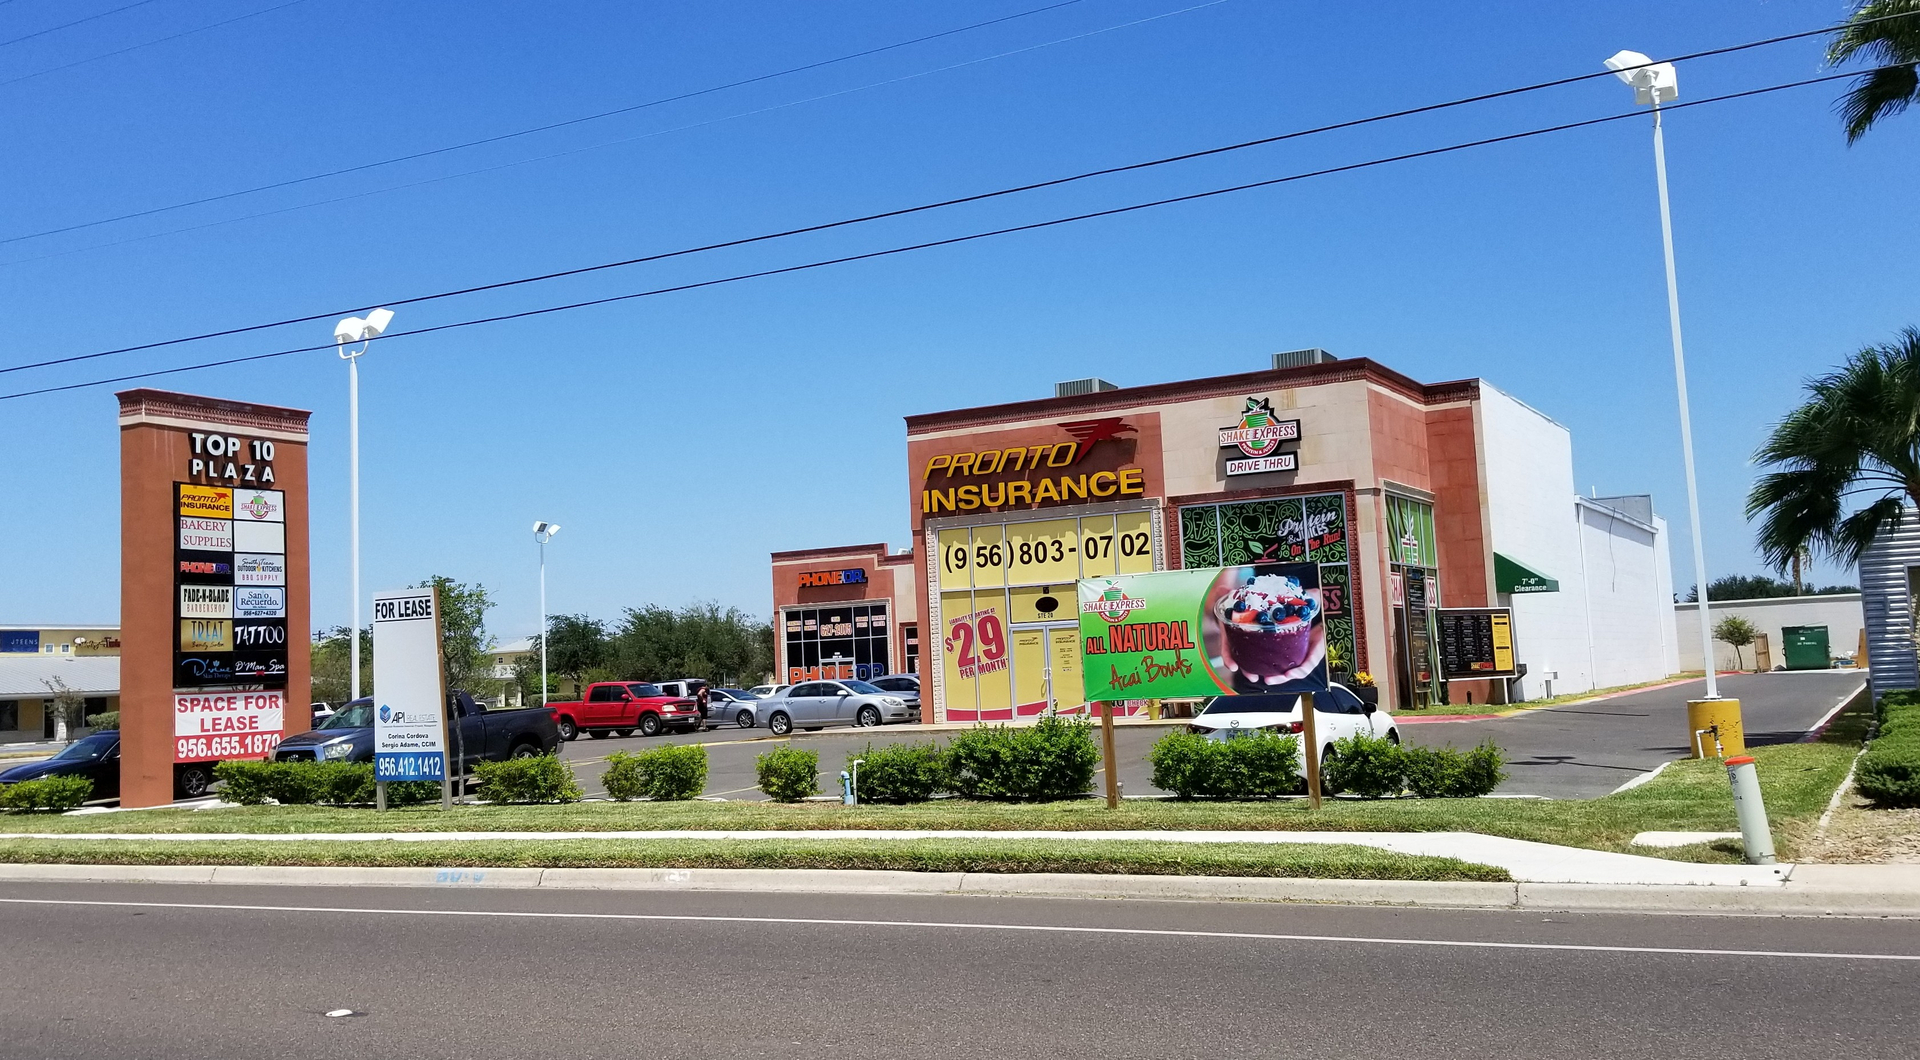 Mcallen tx landlord rep top 10 plaza corner of 10th street and jay ave